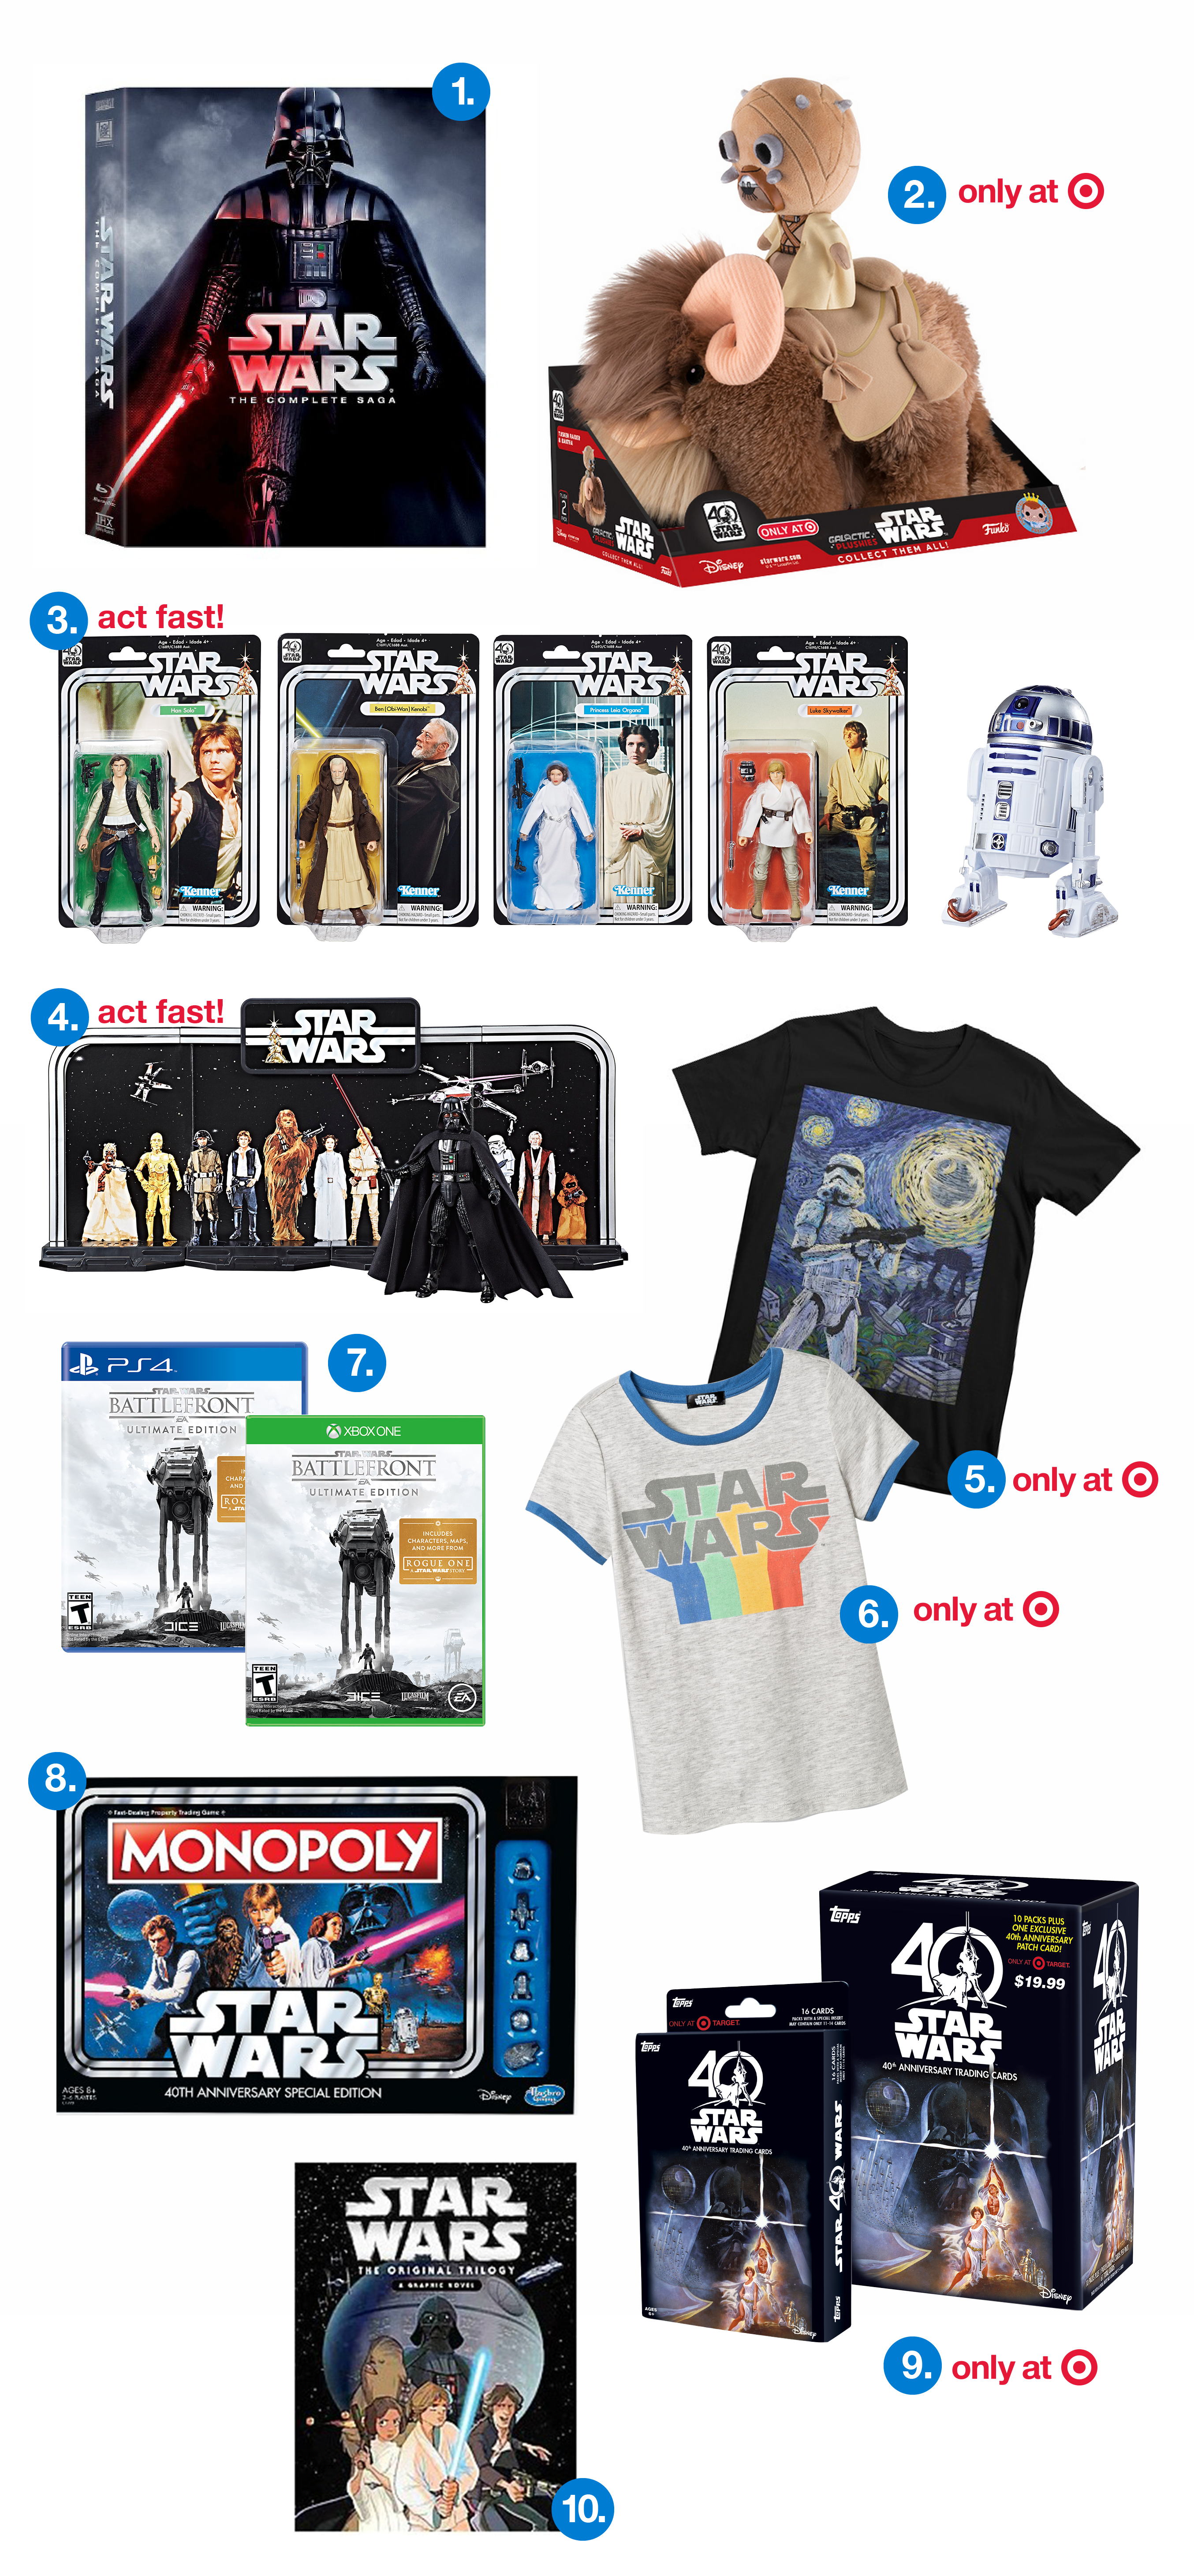 "A collage of ten Star Wars products: 1) DVD set featuring Darth Vader, 2) ""only at Target"": fuzzy plush toy 3) ""act fast"": action figures 4) ""act fast!"" throw-back figure display 5& 6) ""only at Target"" t-shirts 7) Video games 8) special edition Monopoly 9) ""only at Target"" two boxes of trading cards 10) graphic novel"